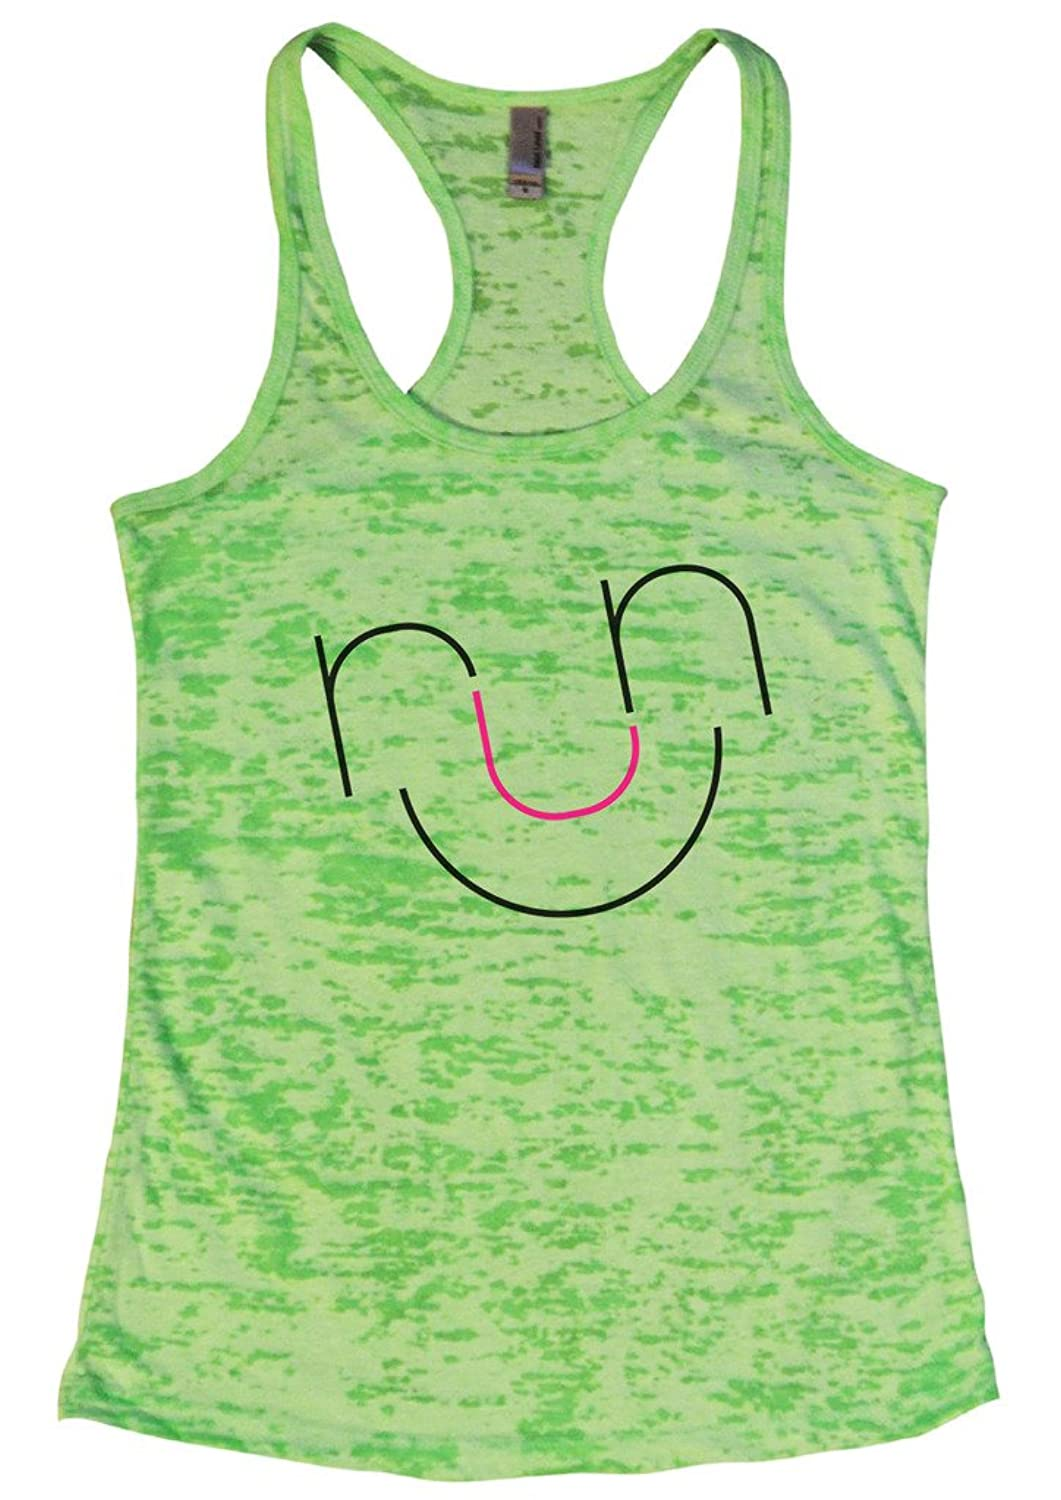 Womens Burnout Running Track and Field Tank Top 鈥淩unning Smile鈥